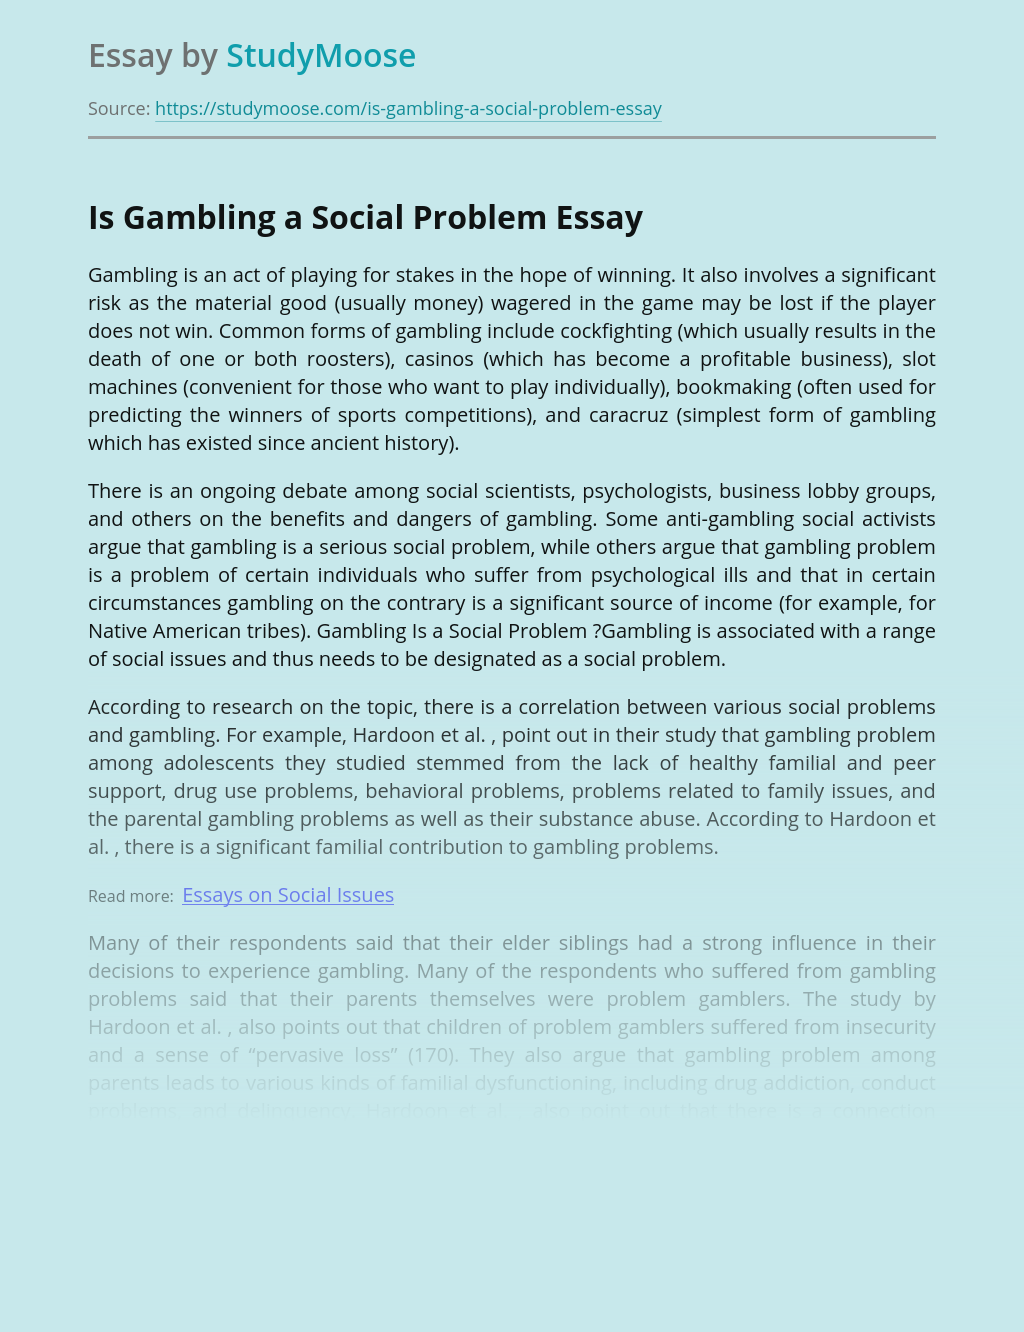 Is Gambling a Social Problem